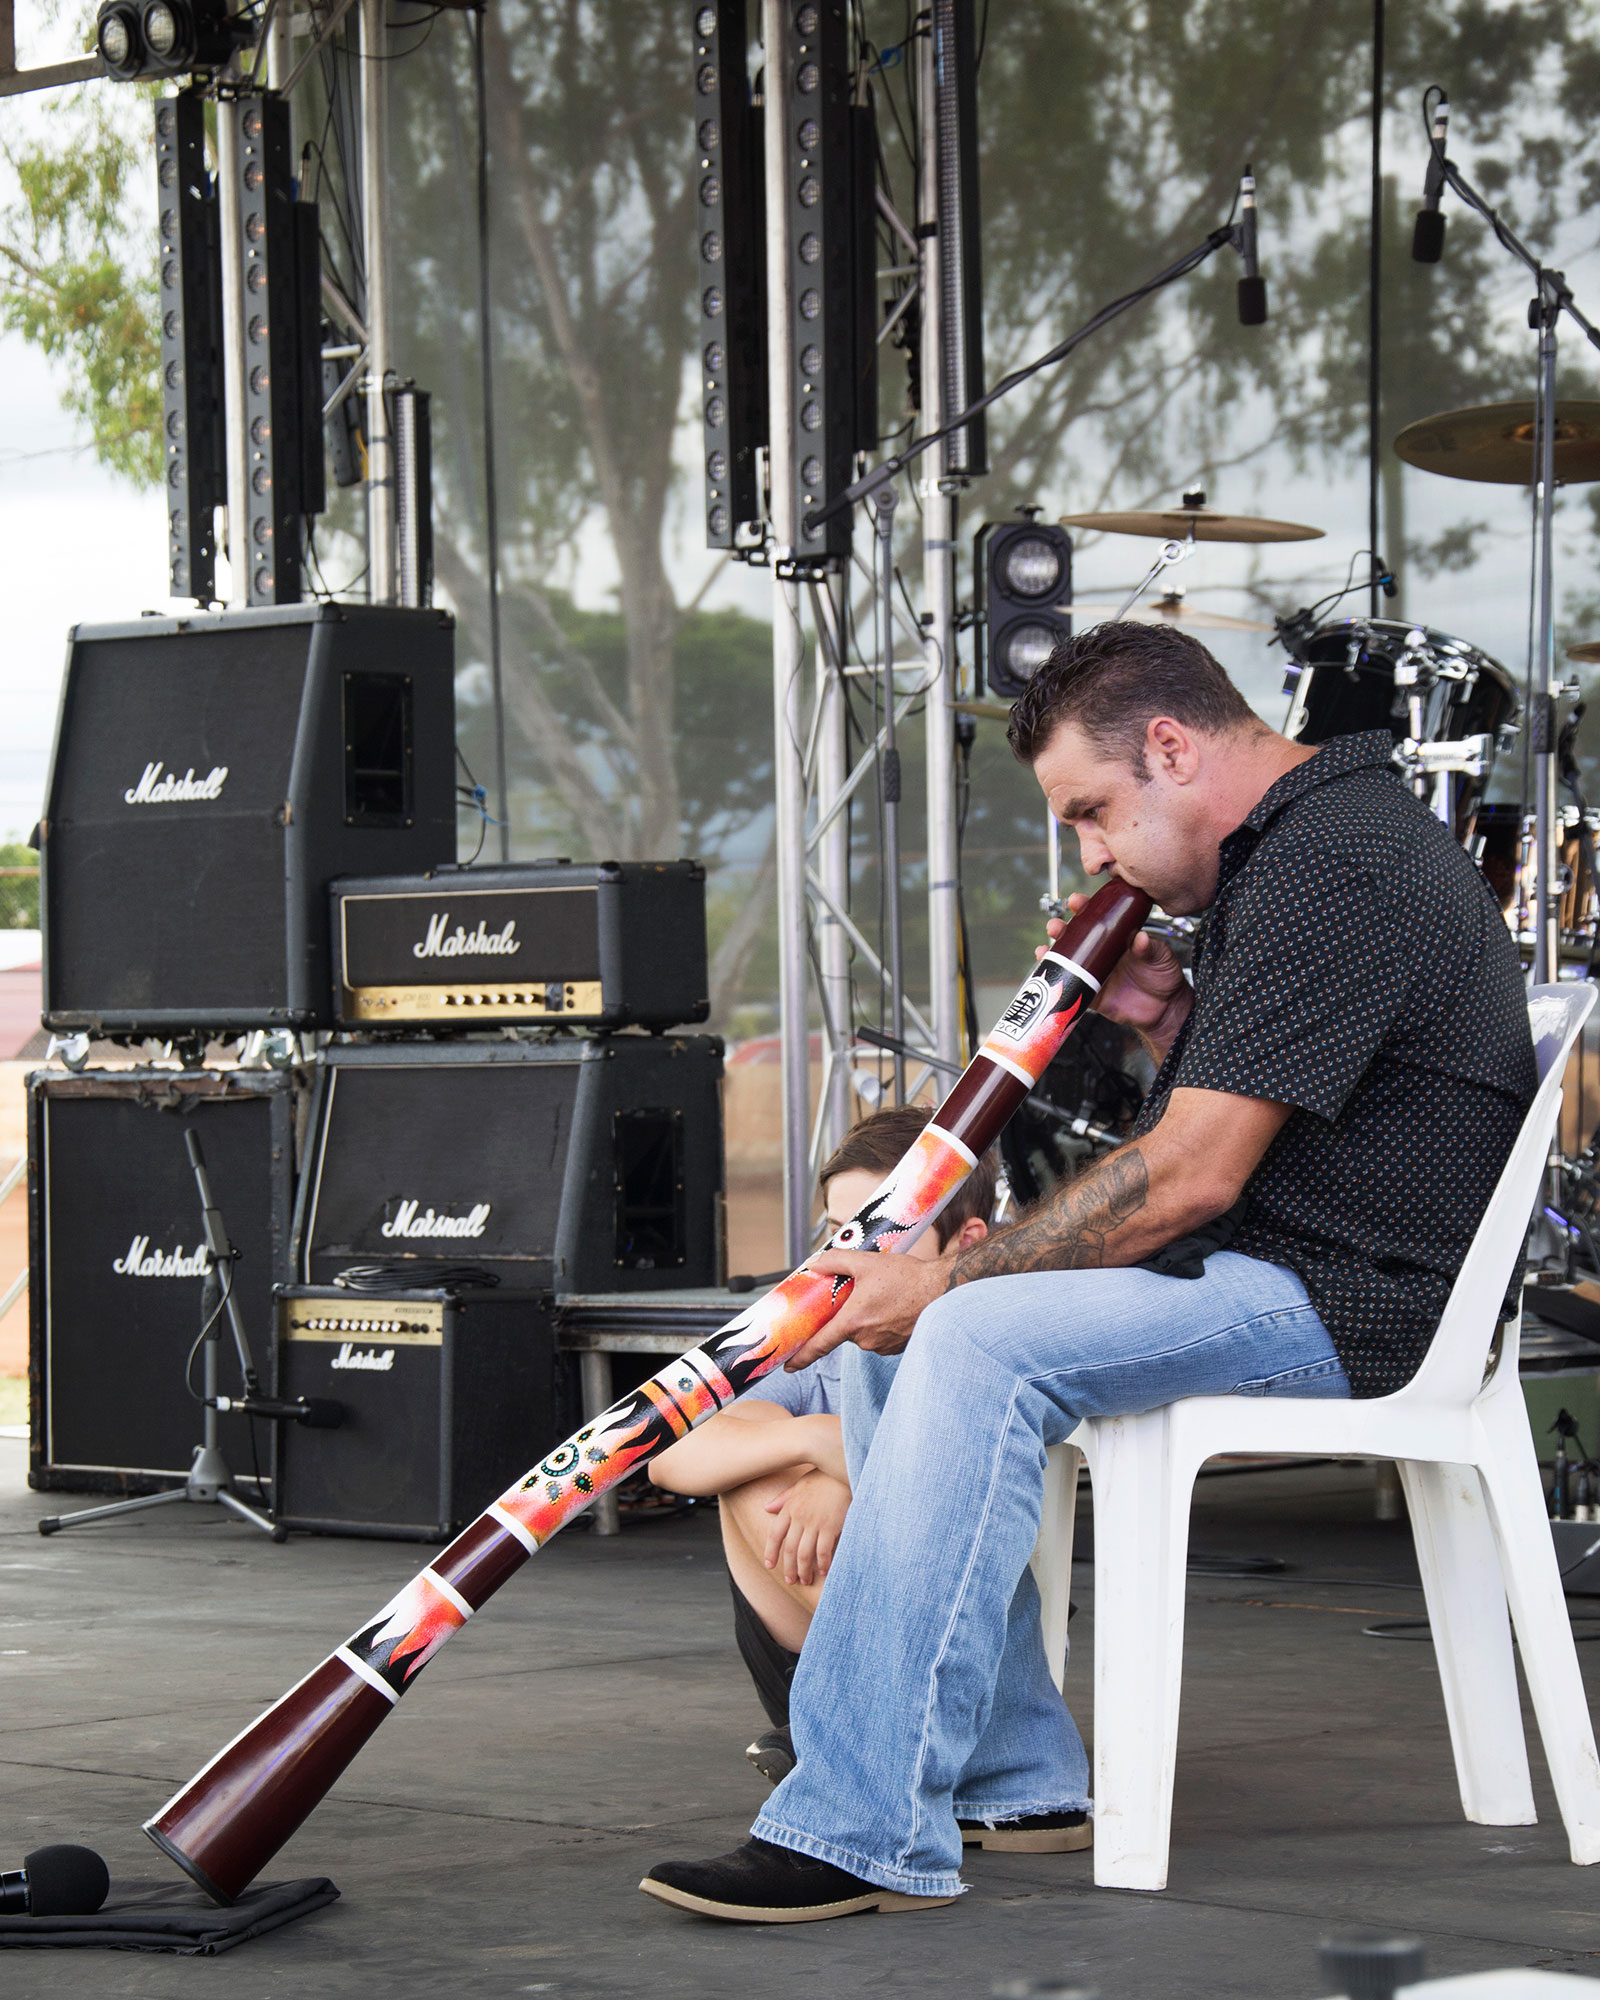 - Daniel Mackley entertained the crowds with his skills with the didgeridoo.